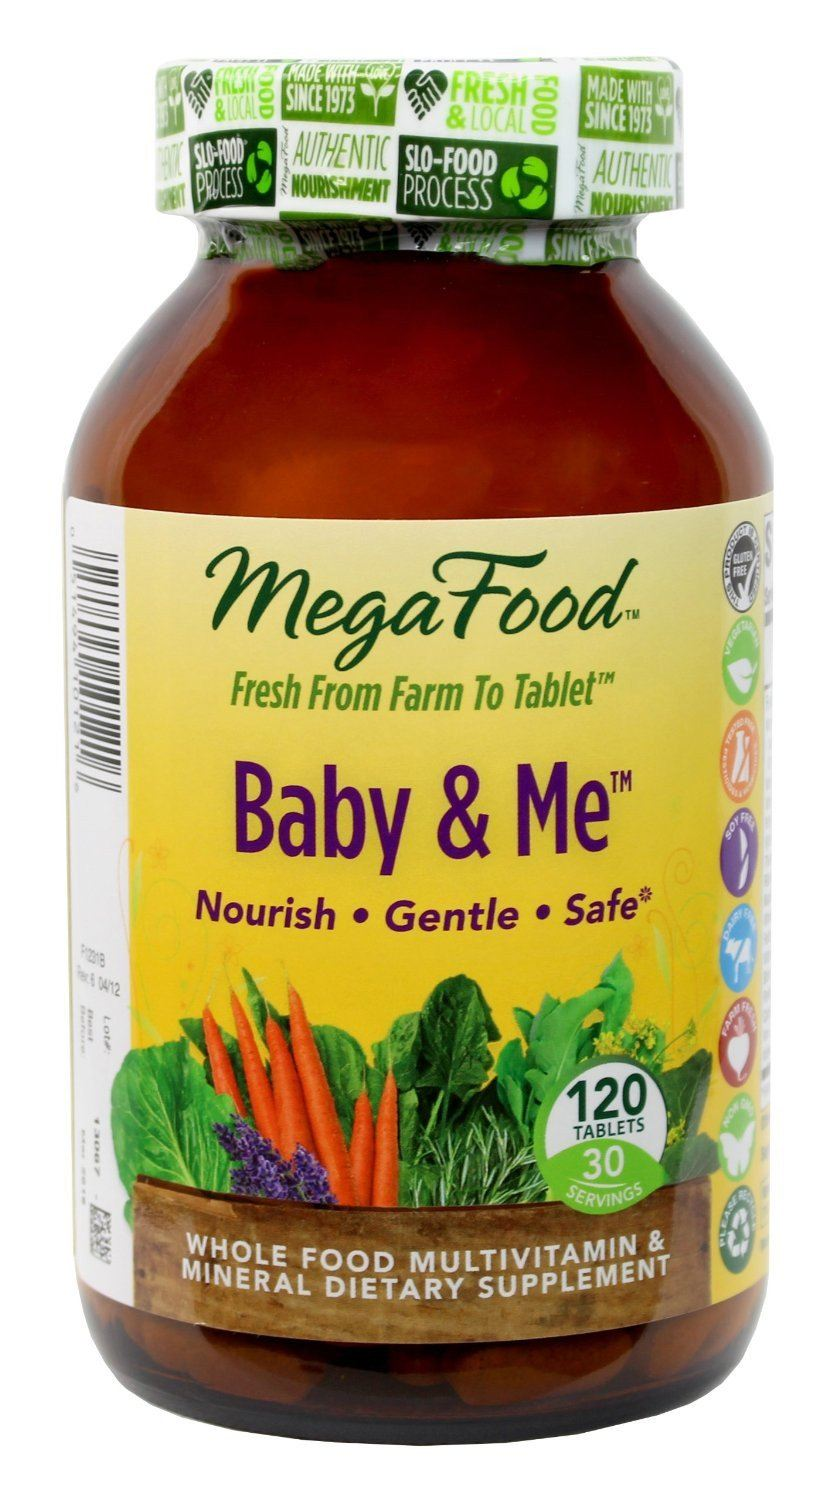 Supplements & Vitamins - Mega Food - Baby & Me, 120 Tablets